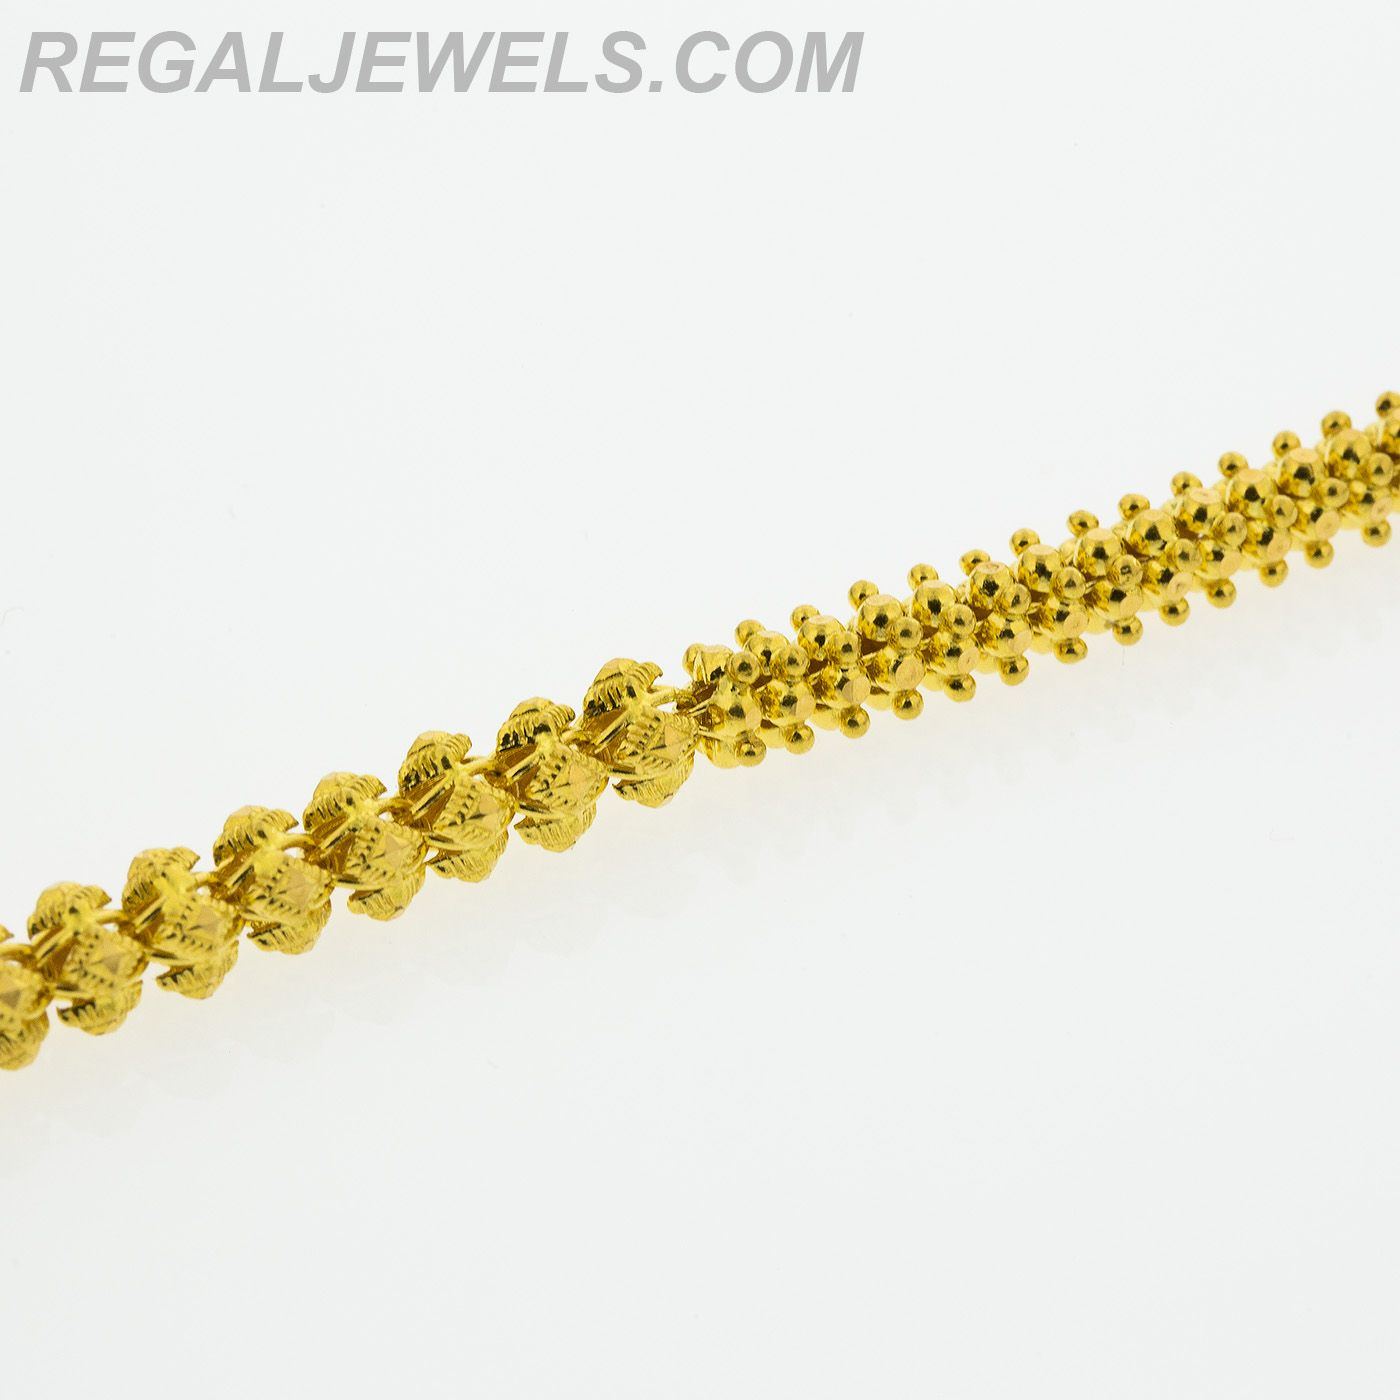 childs dance baby gold jewels inc regal school bracelet